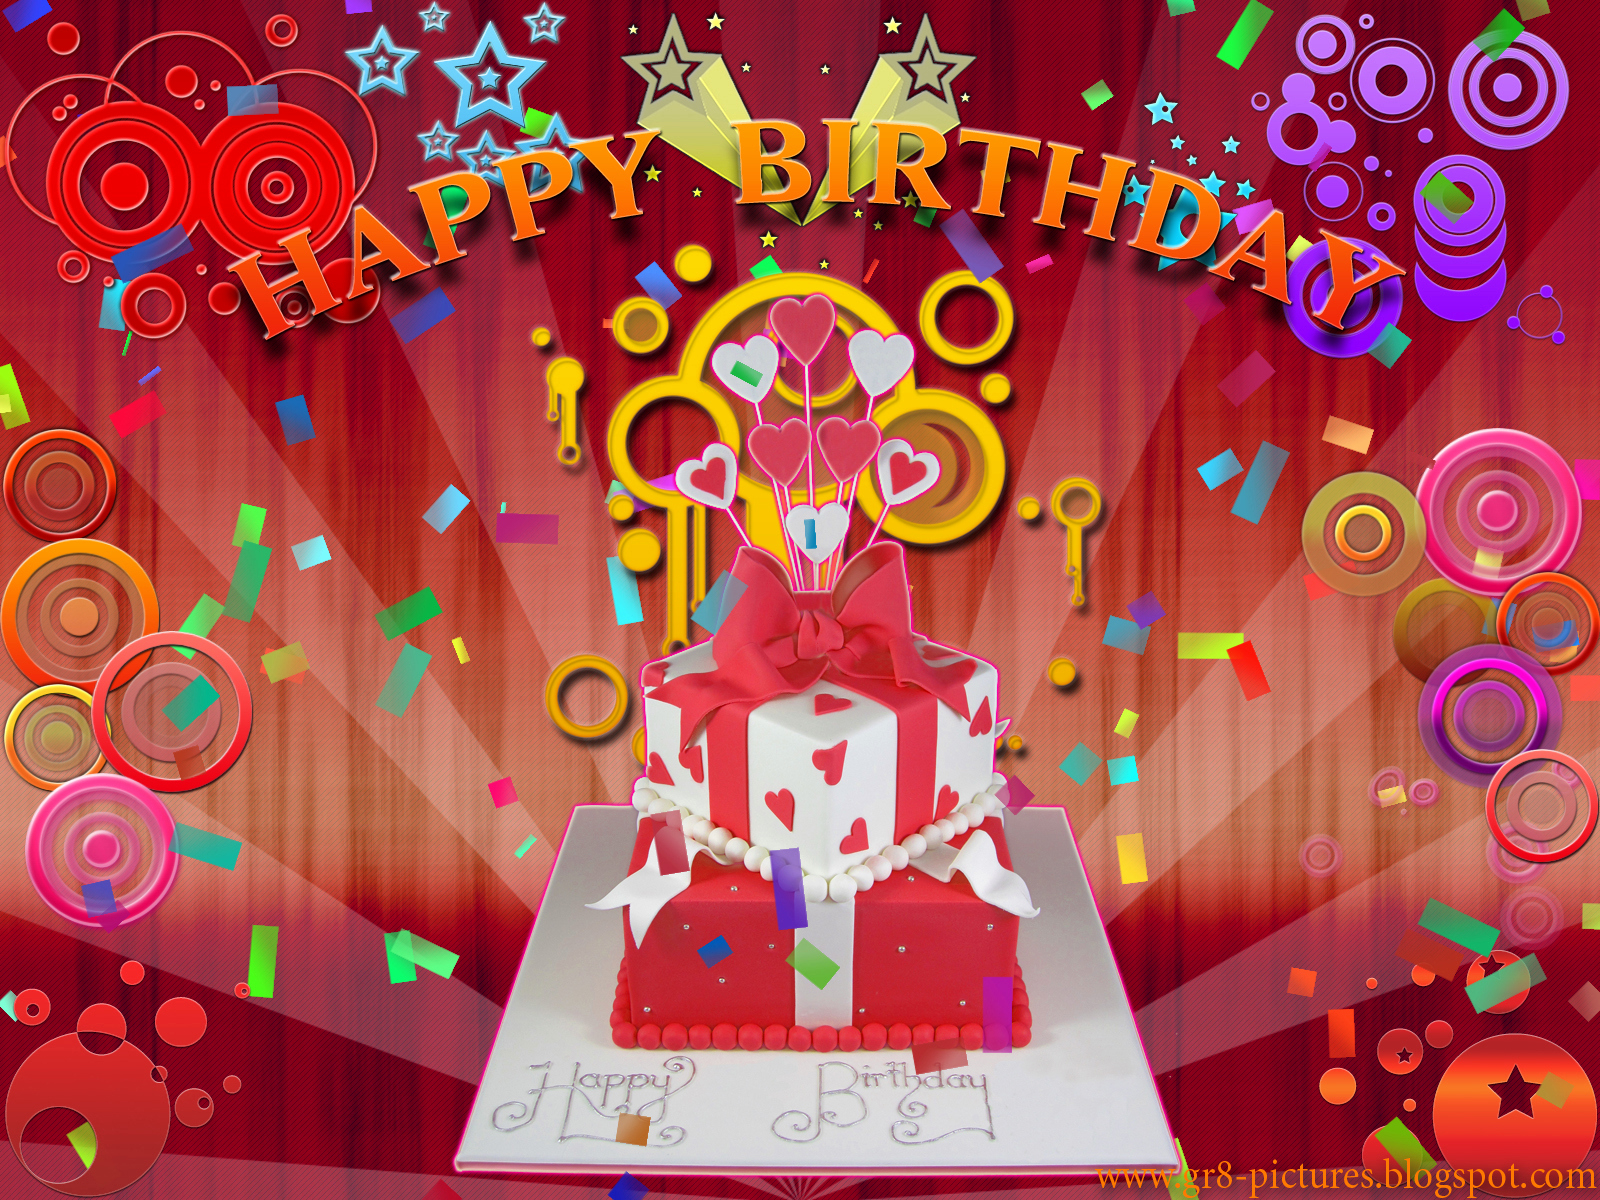 Happy Bday Wallpapers Free New Hd Wallpapers Birthday